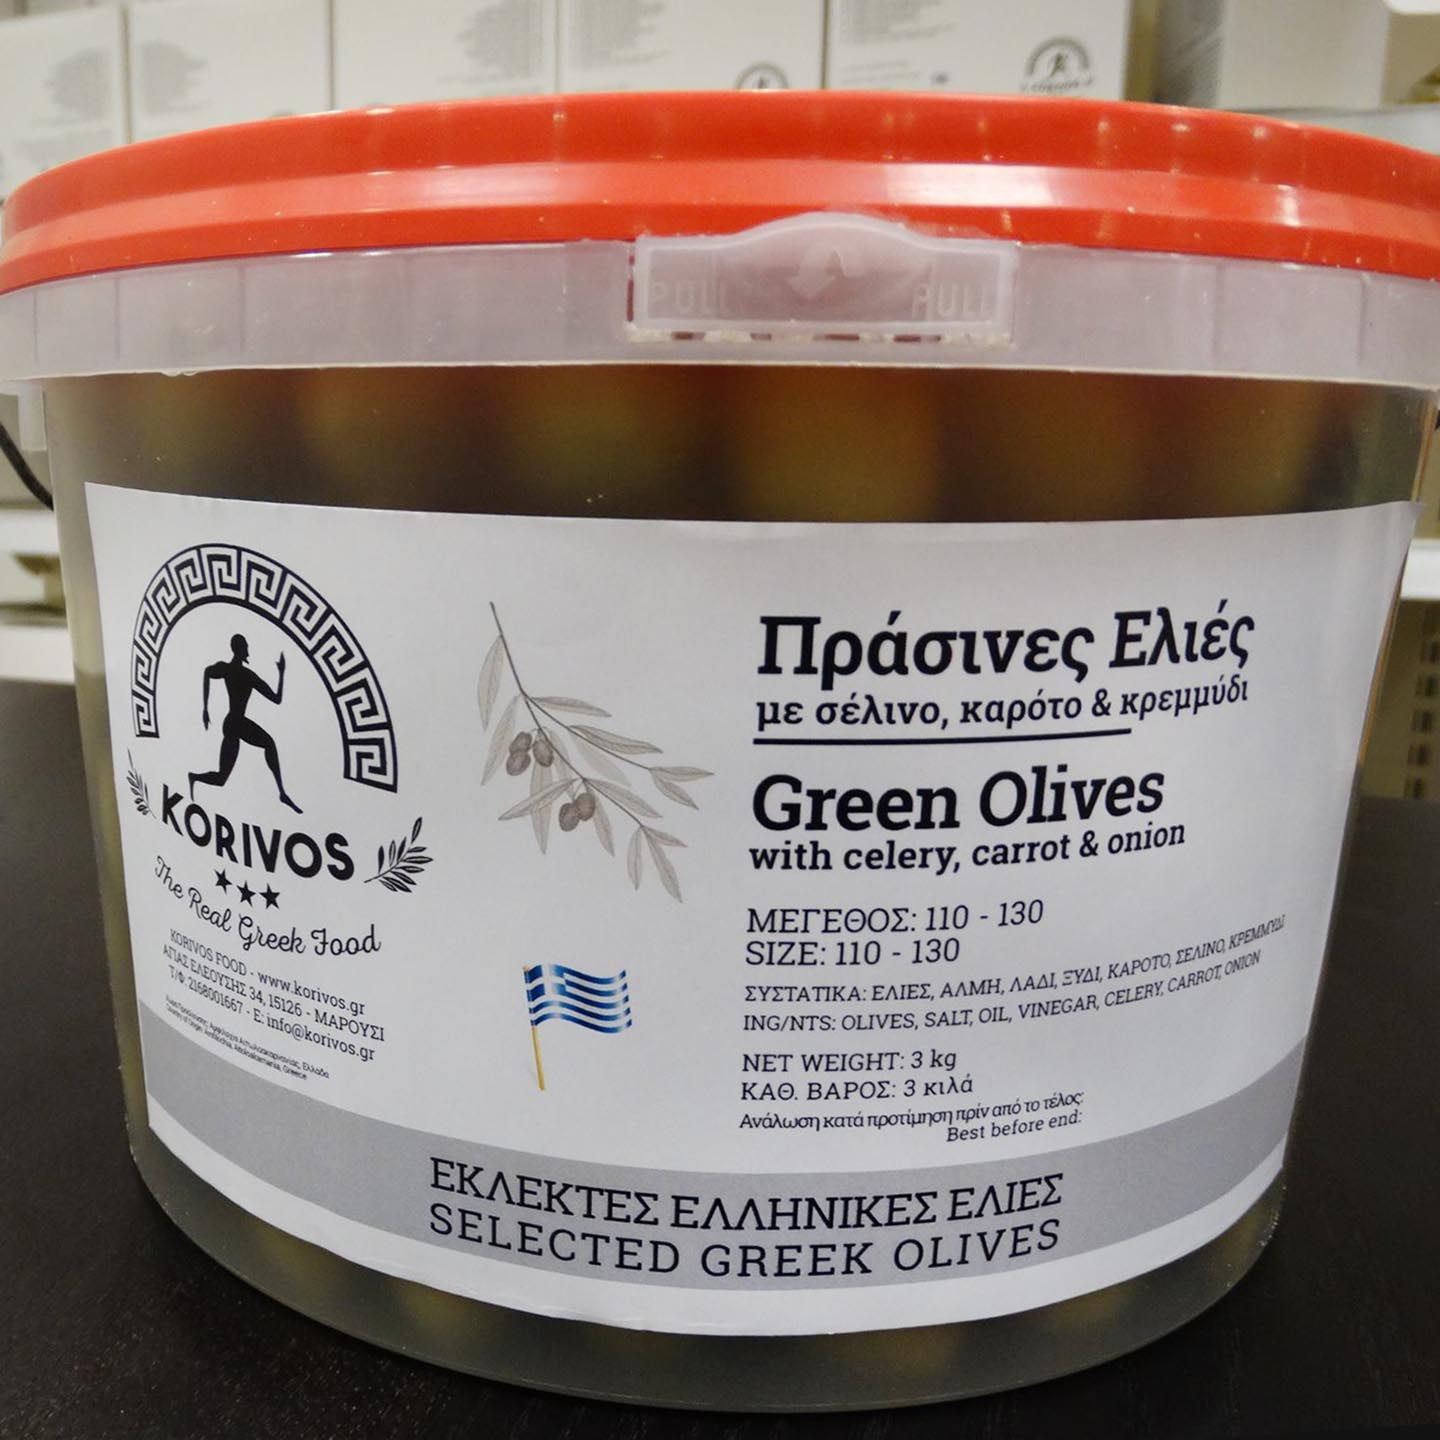 green olives carot korivos